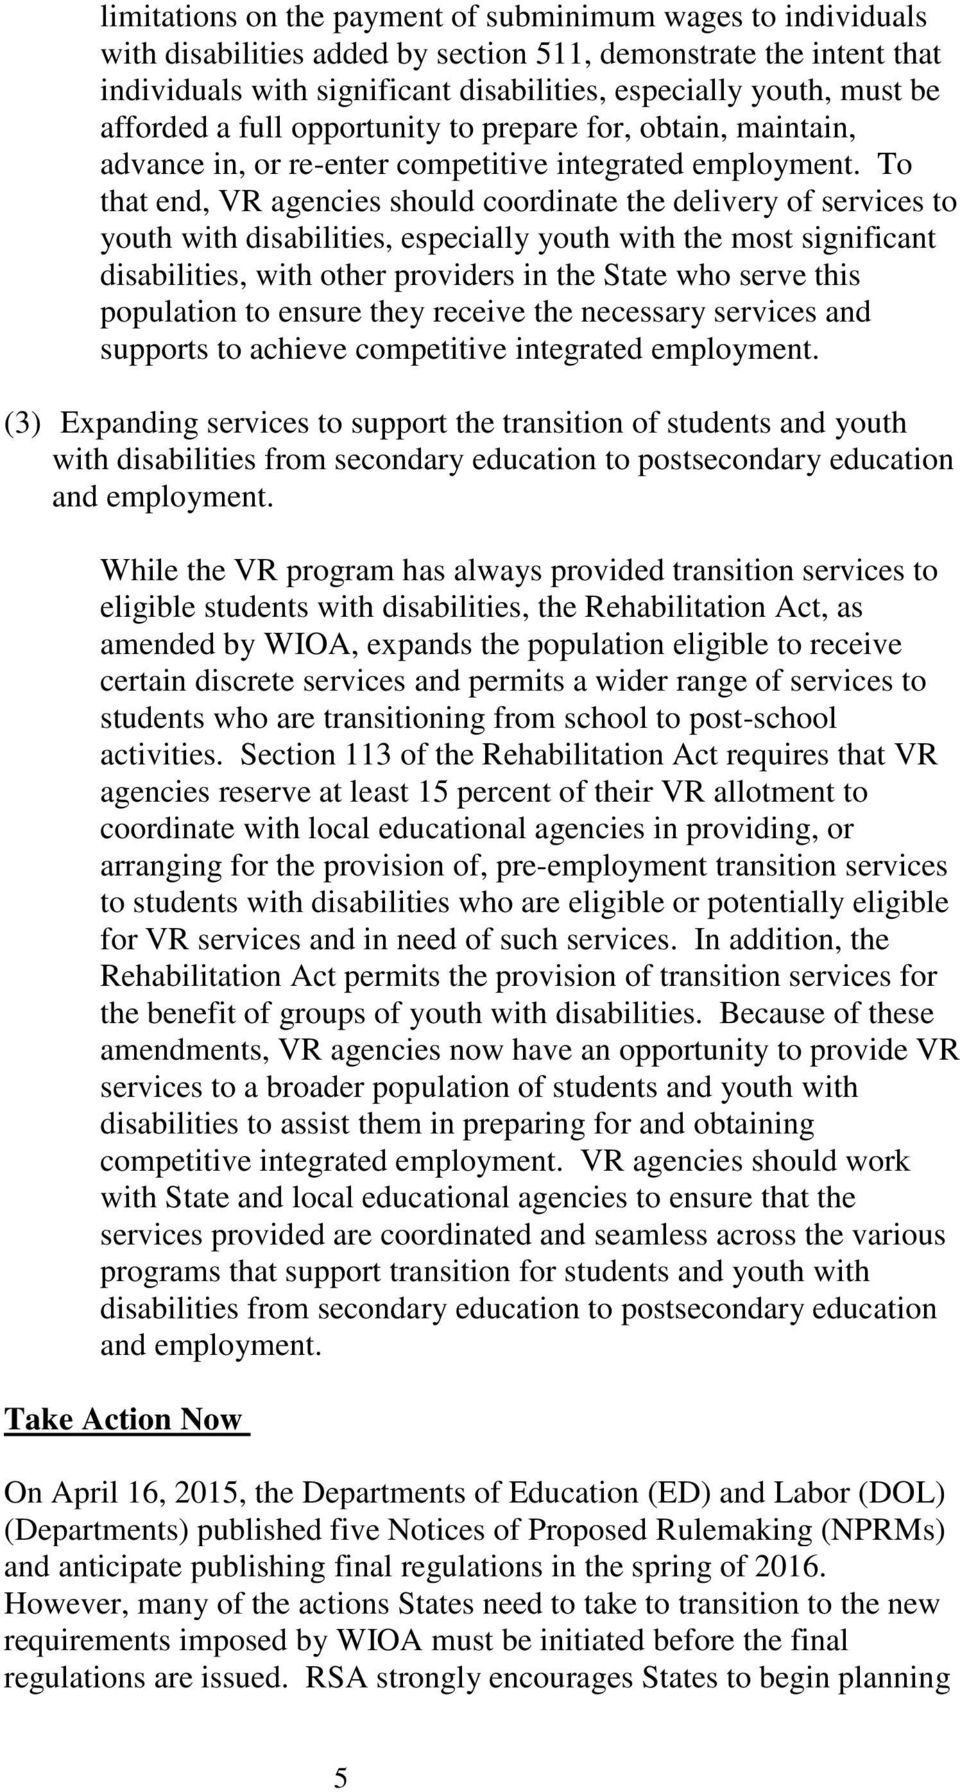 To that end, VR agencies should coordinate the delivery of services to youth with disabilities, especially youth with the most significant disabilities, with other providers in the State who serve